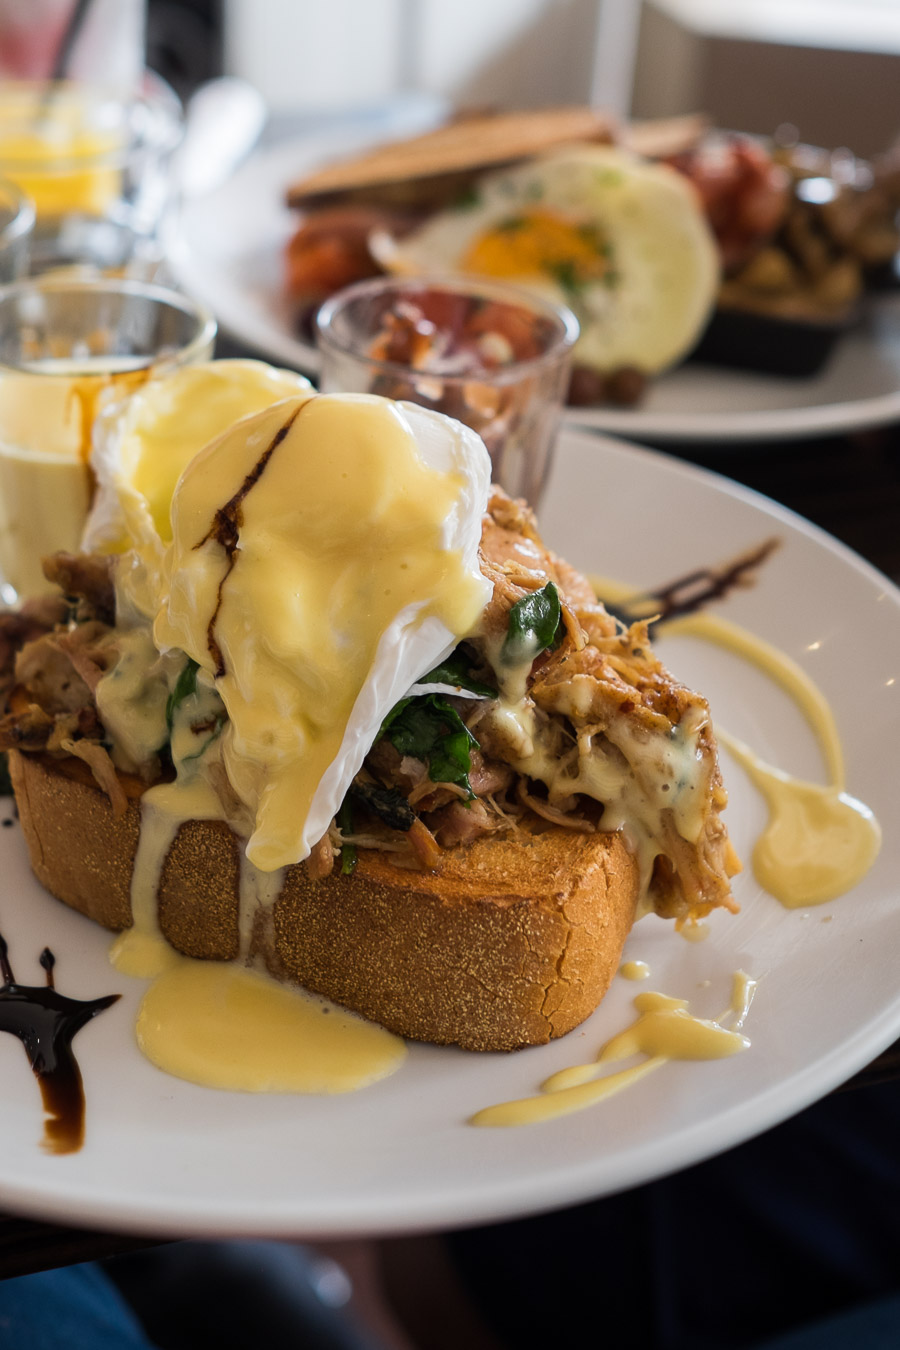 Pulled pork Benedict with two poached eggs, wilted spinach, onion jam, hollandaise and thick toast (AU$19.50)